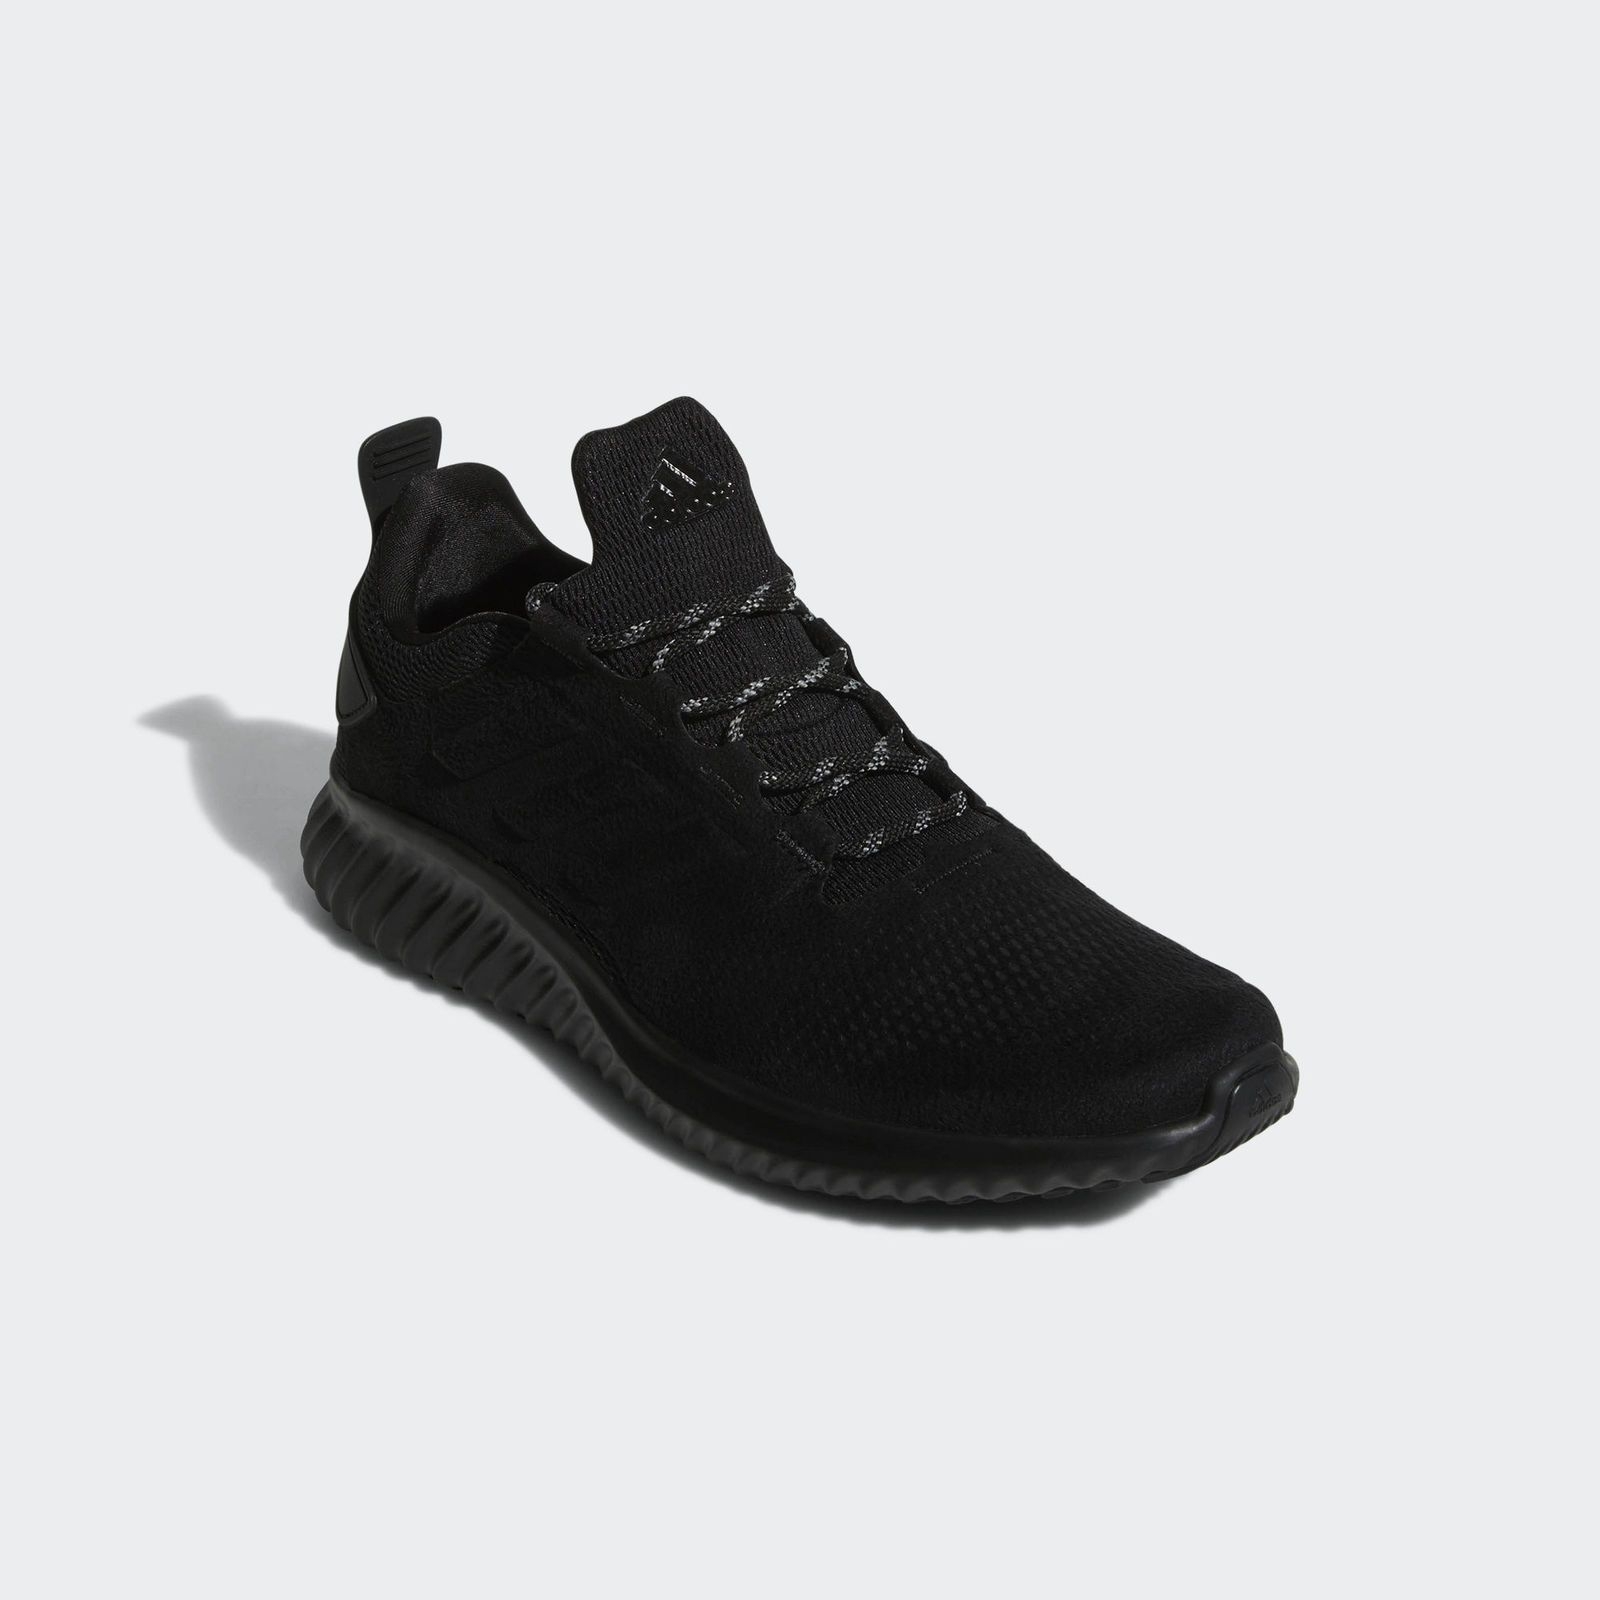 huge discount 54b8d 17518 adidas Alphabounce City Shoes Mens  eBay